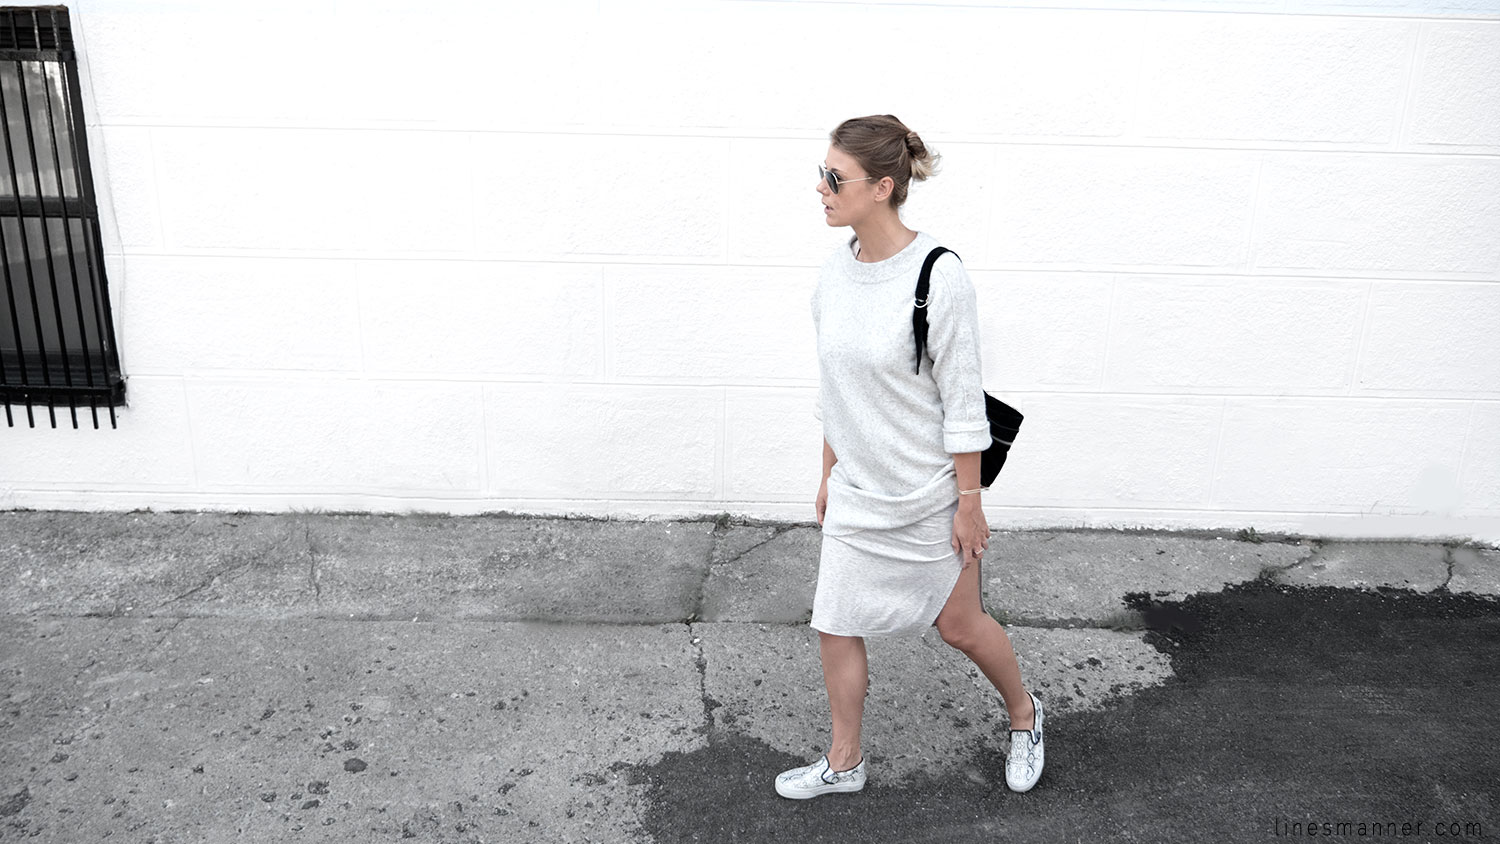 Lines-Manner-Fashion-Collaboration-The_Demeler-Monochrome-Grey_on_Grey-Fresh-Brightly-Outfit-Simplicity-Details-Trend-Minimalist-Flowy-Layering-Sleeves-Sweater_Dress-10